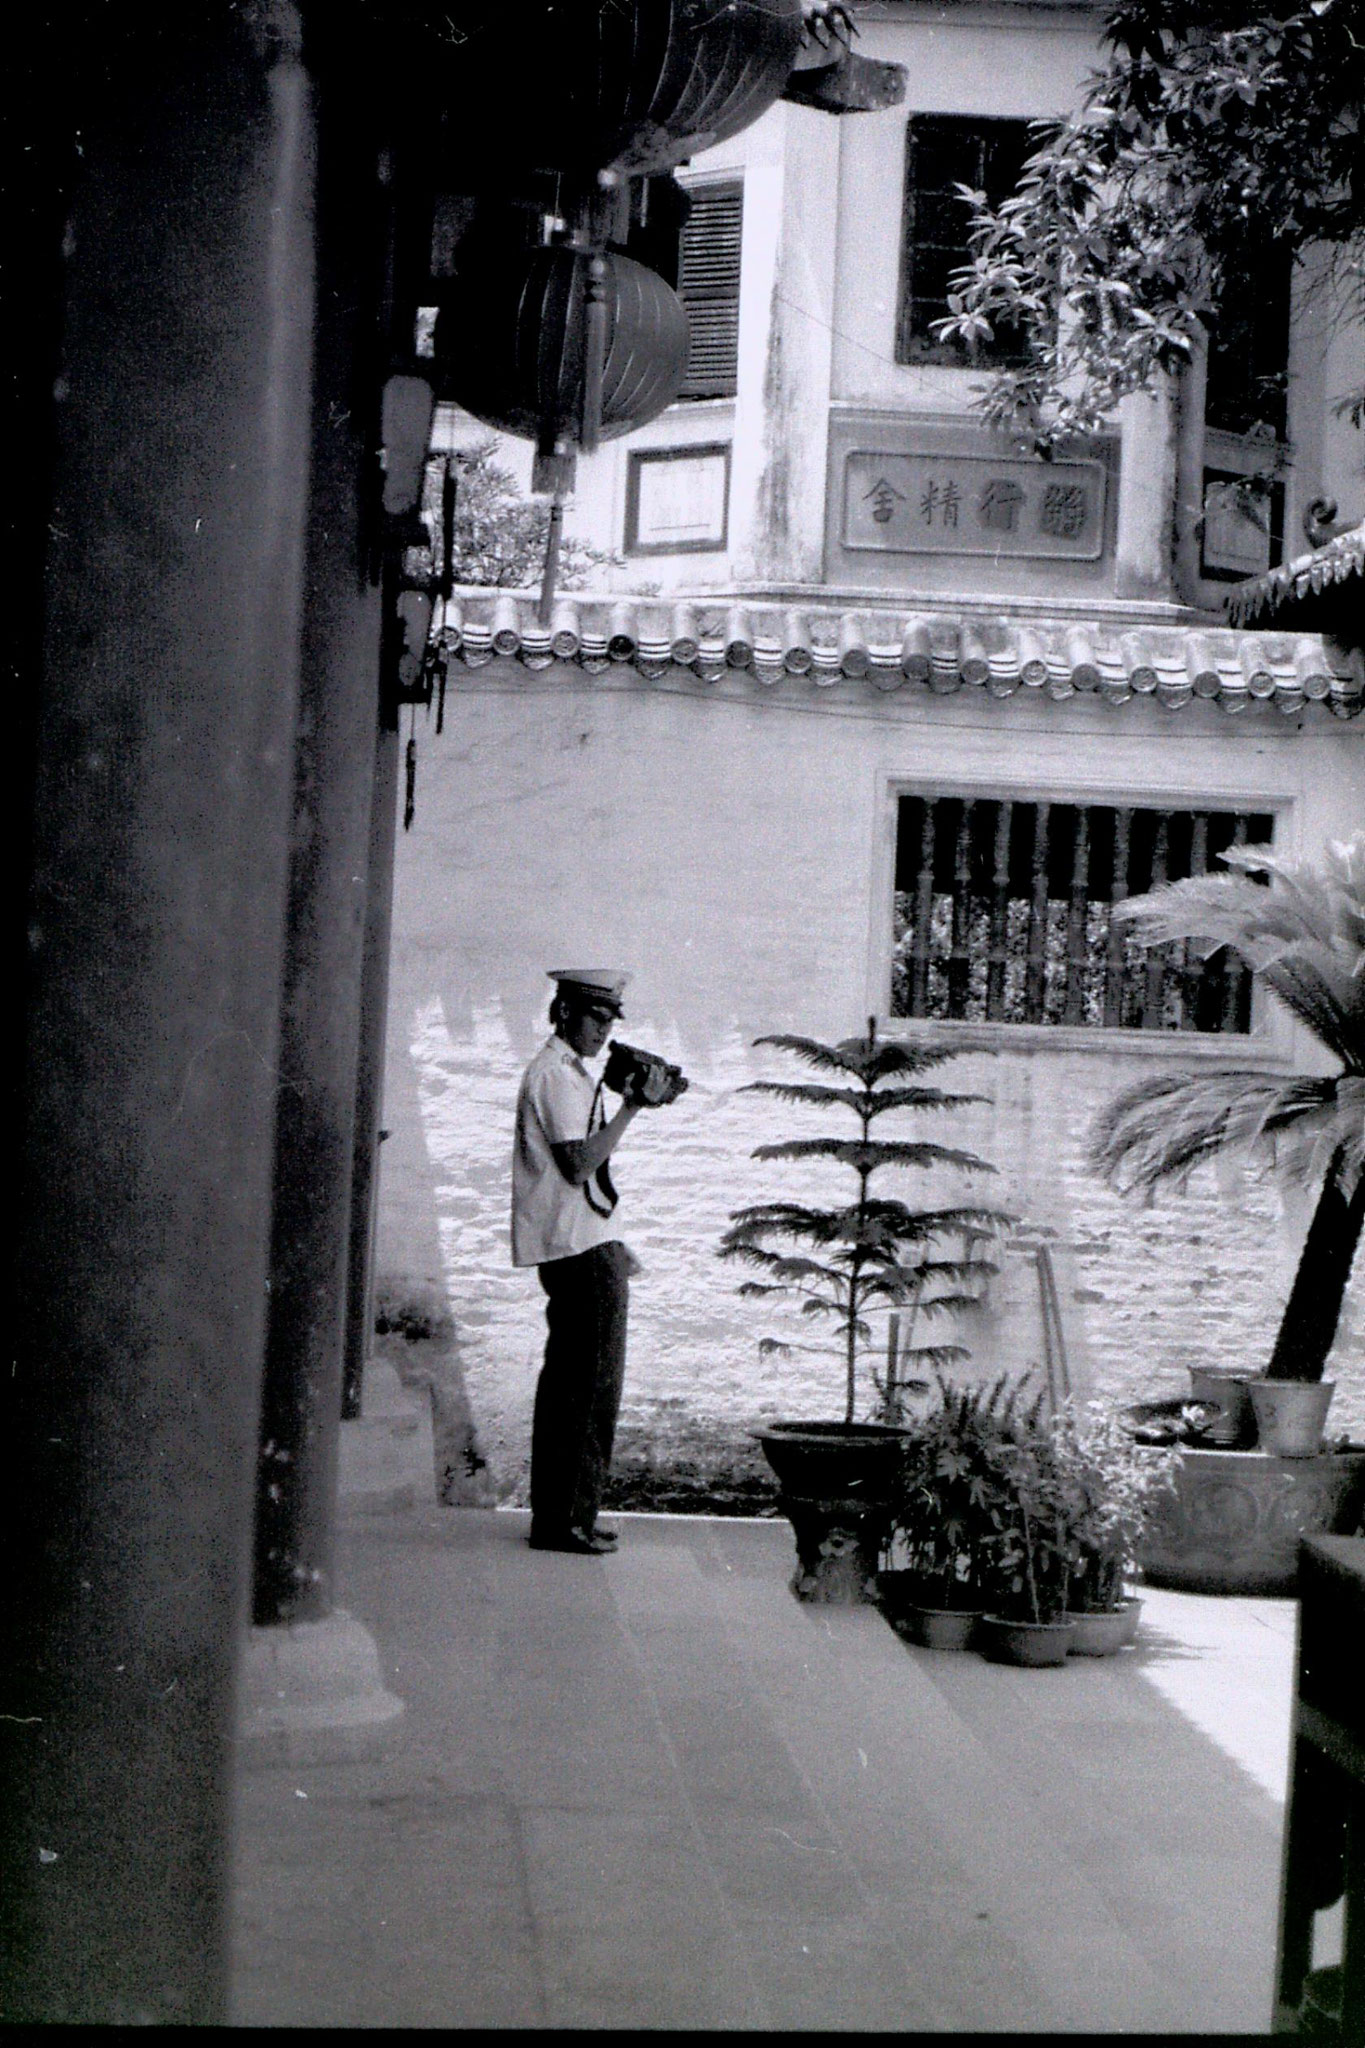 18/5/1989: 25: Guangzhou Six Banyan Temple PC and video